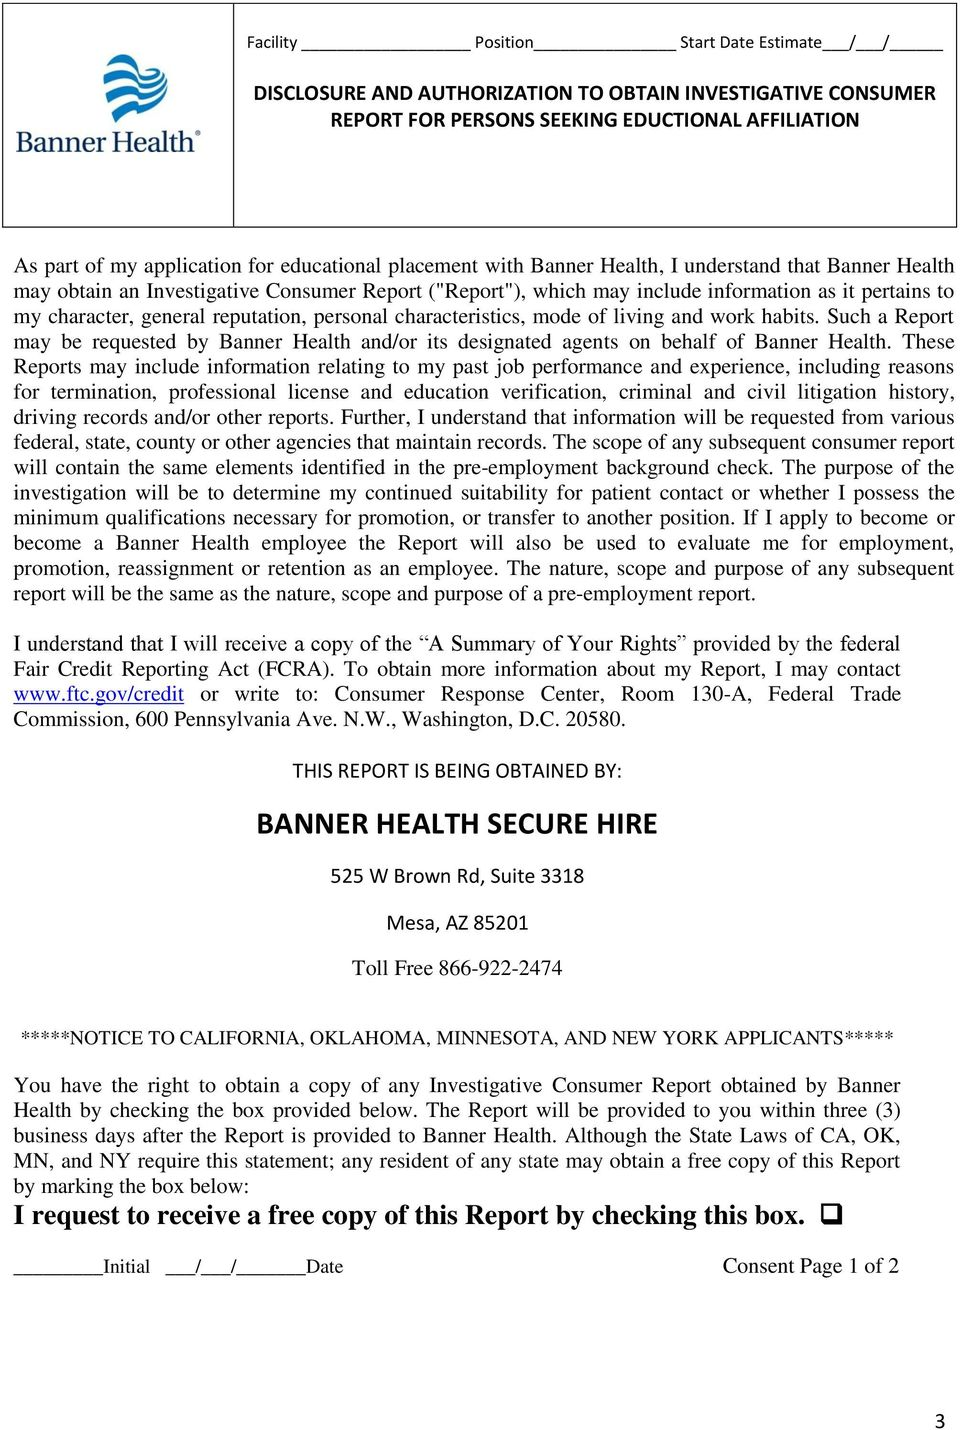 personal characteristics, mode of living and work habits. Such a Report may be requested by Banner Health and/or its designated agents on behalf of Banner Health.